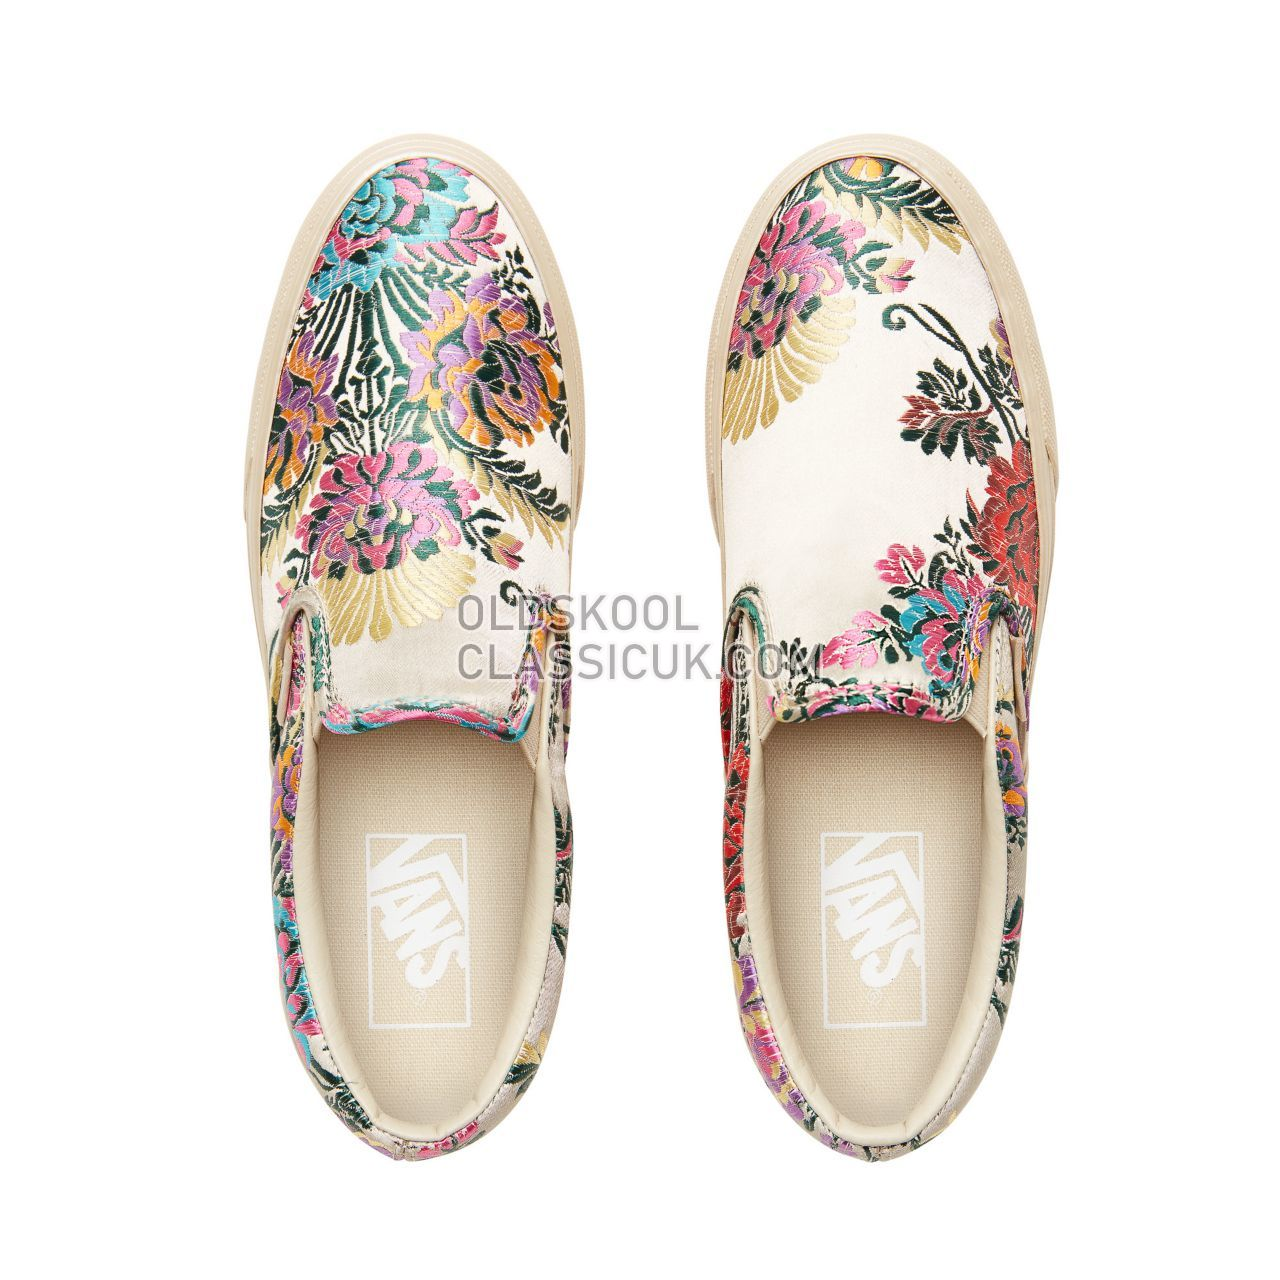 Vans Festival Satin Classic Slip-On Sneakers Womens (Festival Satin) Gold/Gold VN0A38F7ULO Shoes